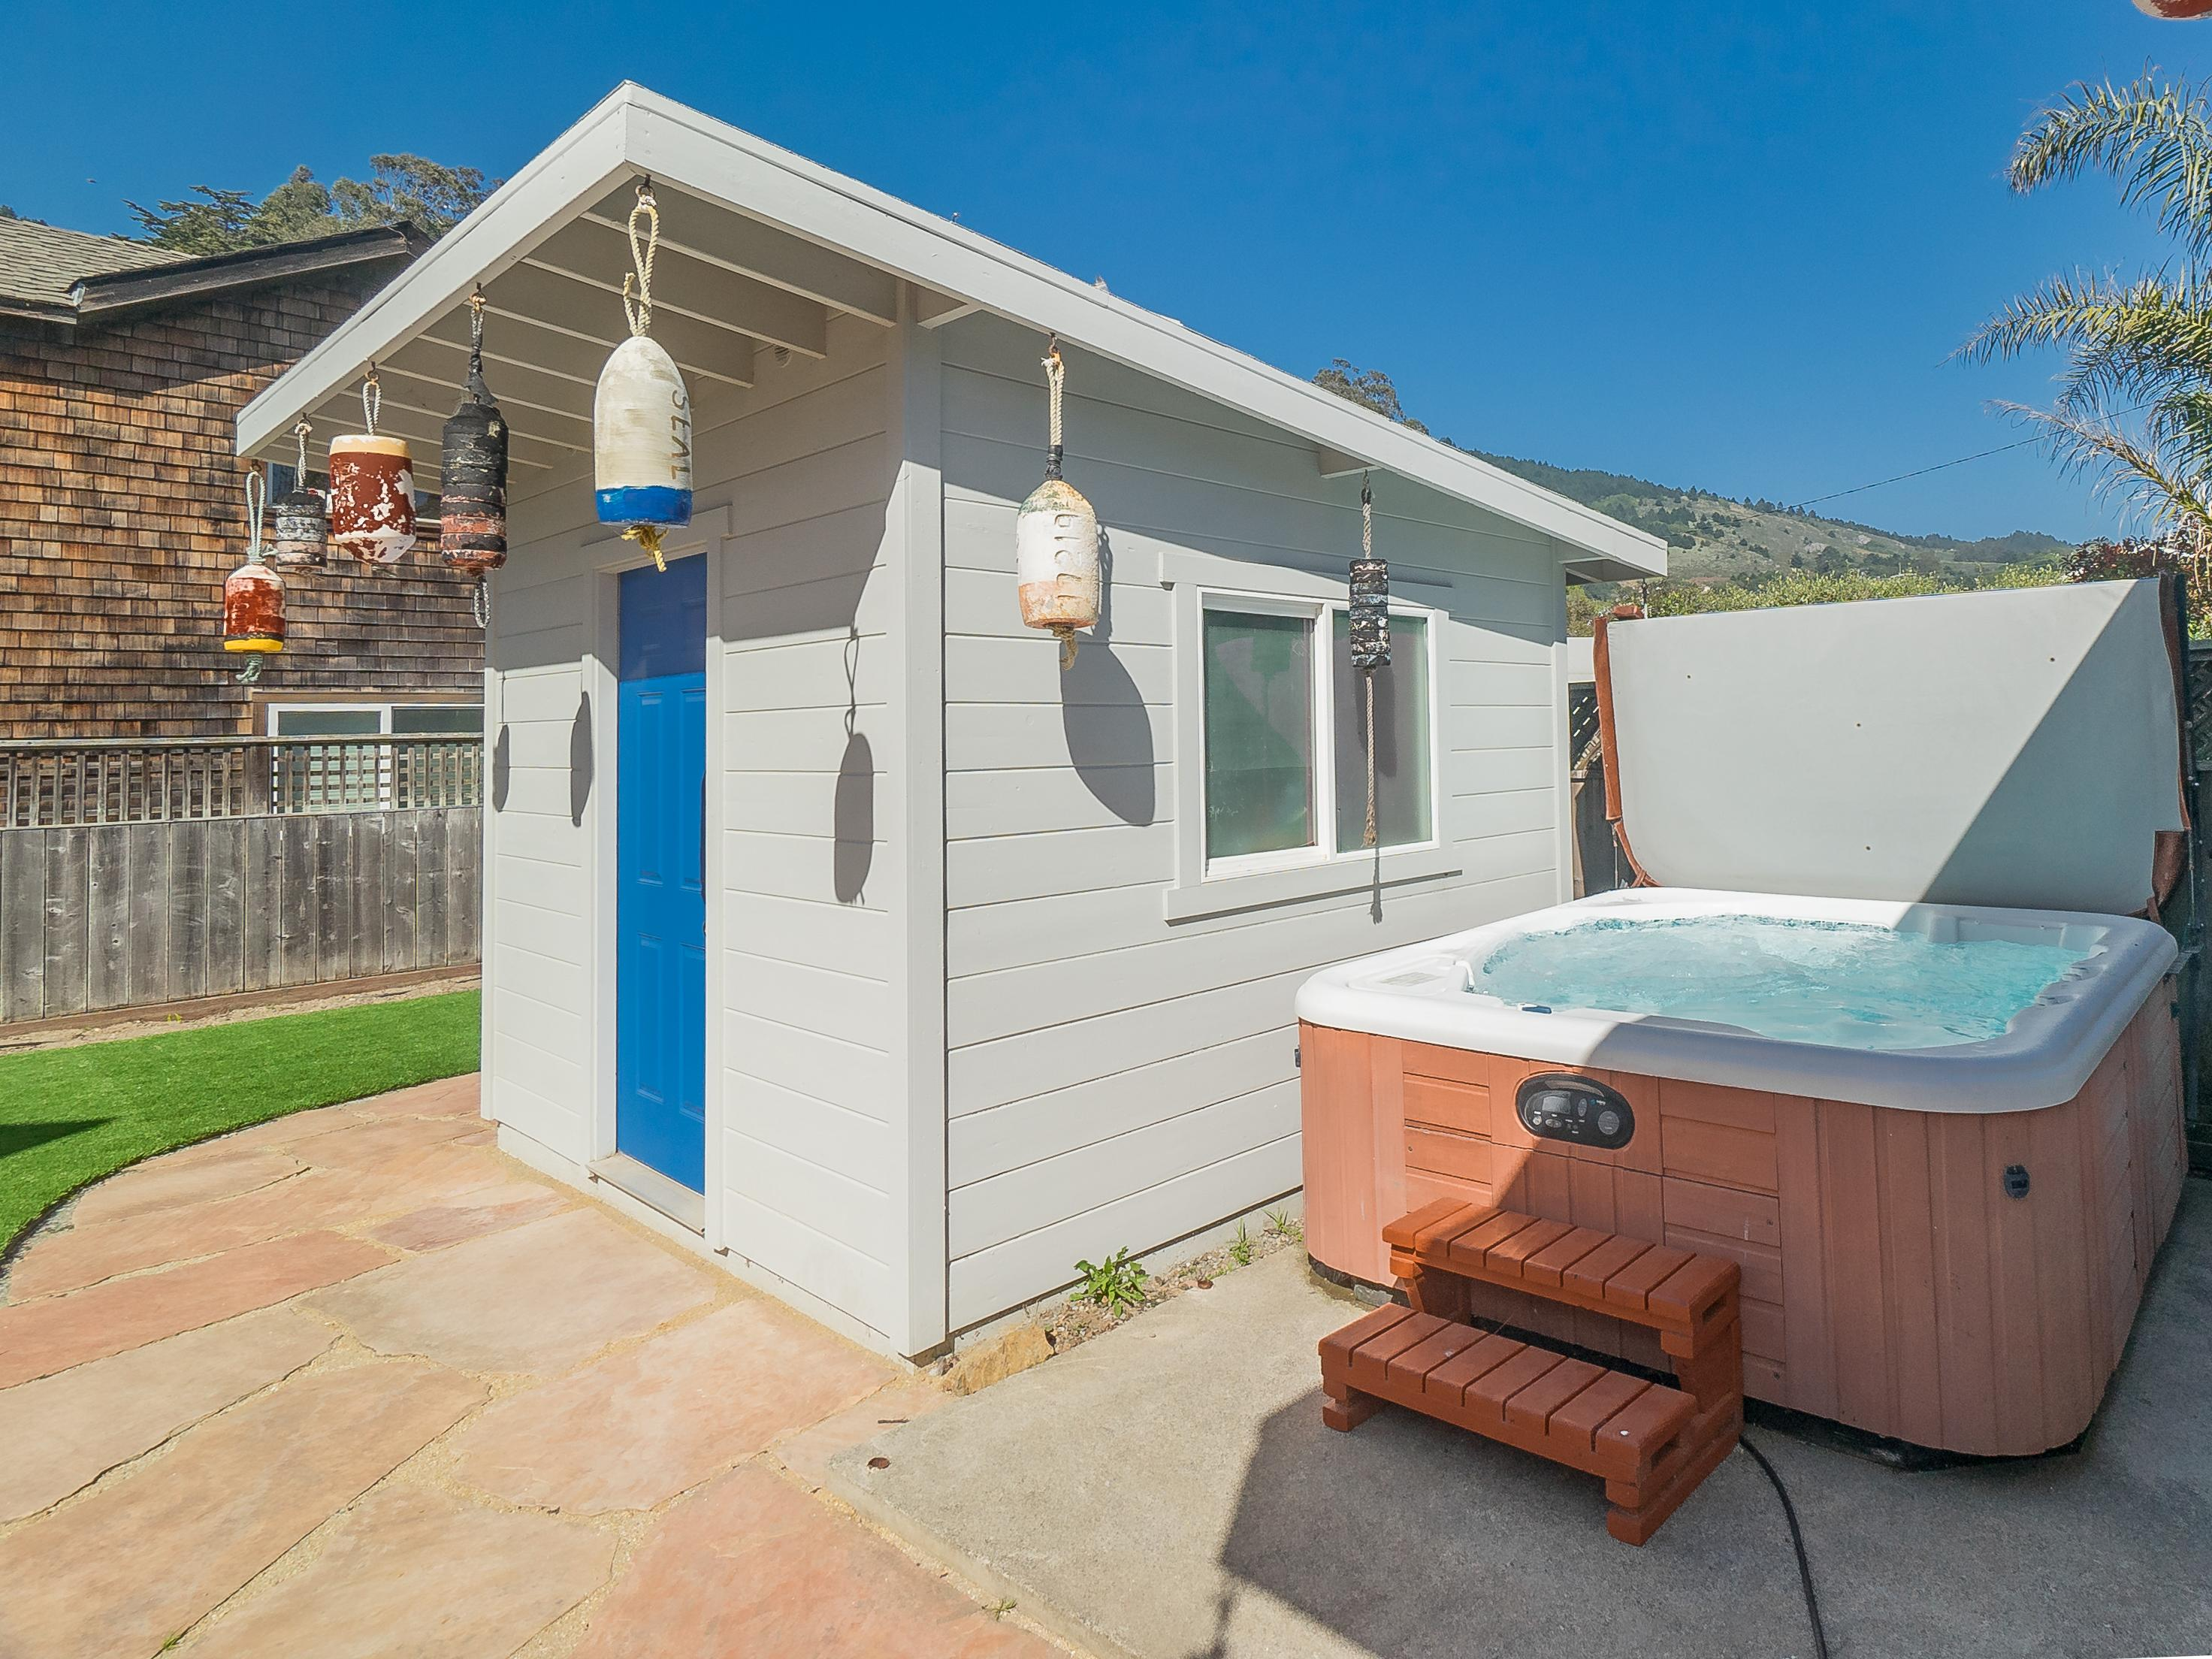 The hot tub is shared between the 3 units on the property.